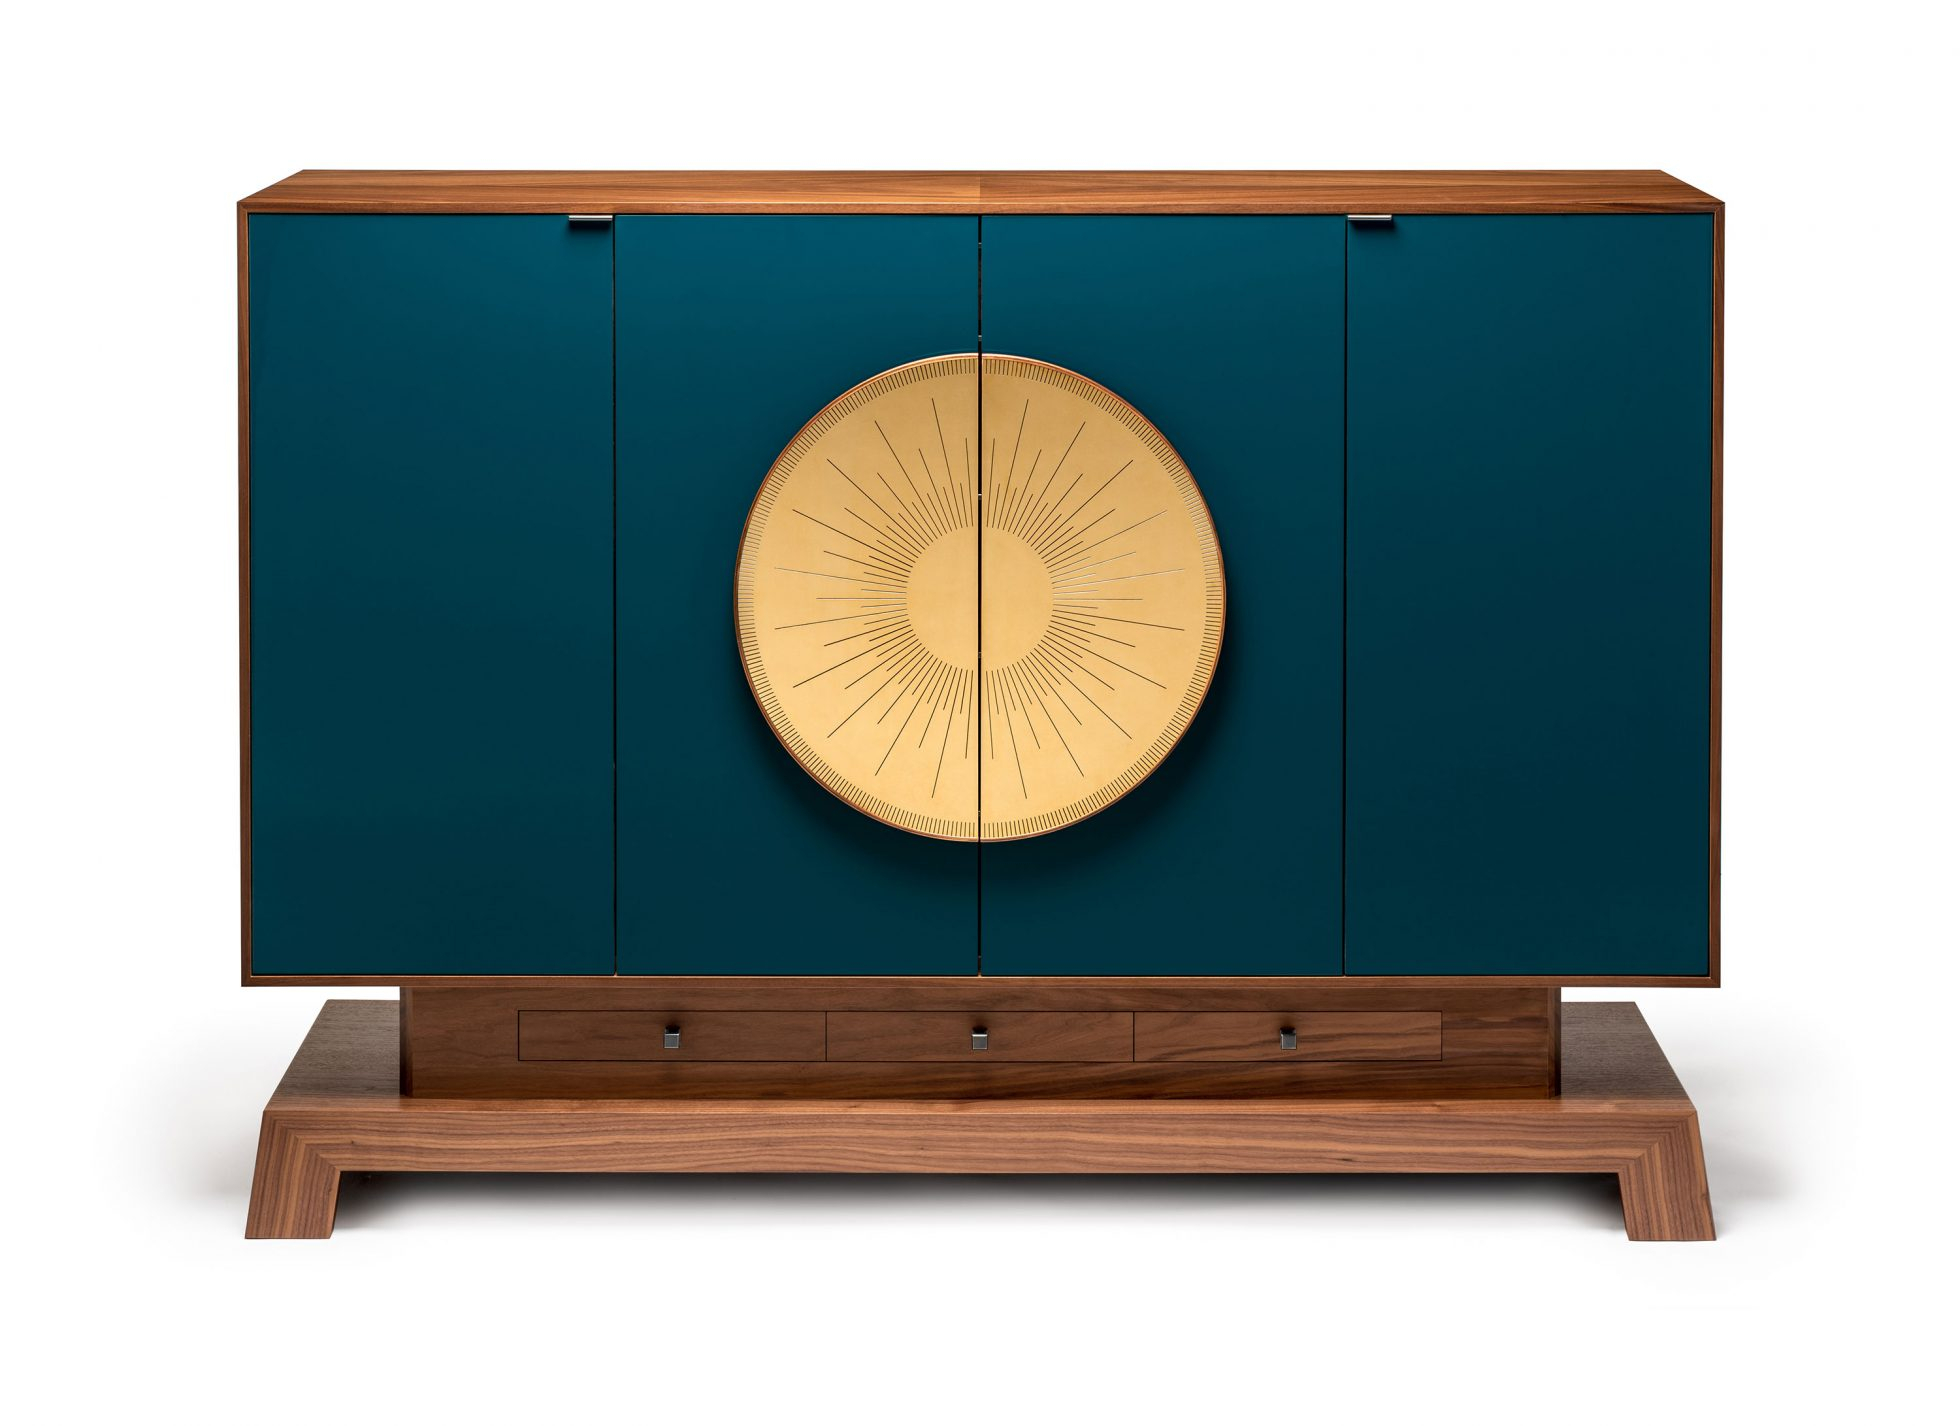 Bartleby Credenza – Lacquer – Amy Somerville London With Regard To Turquoise Skies Credenzas (View 19 of 30)